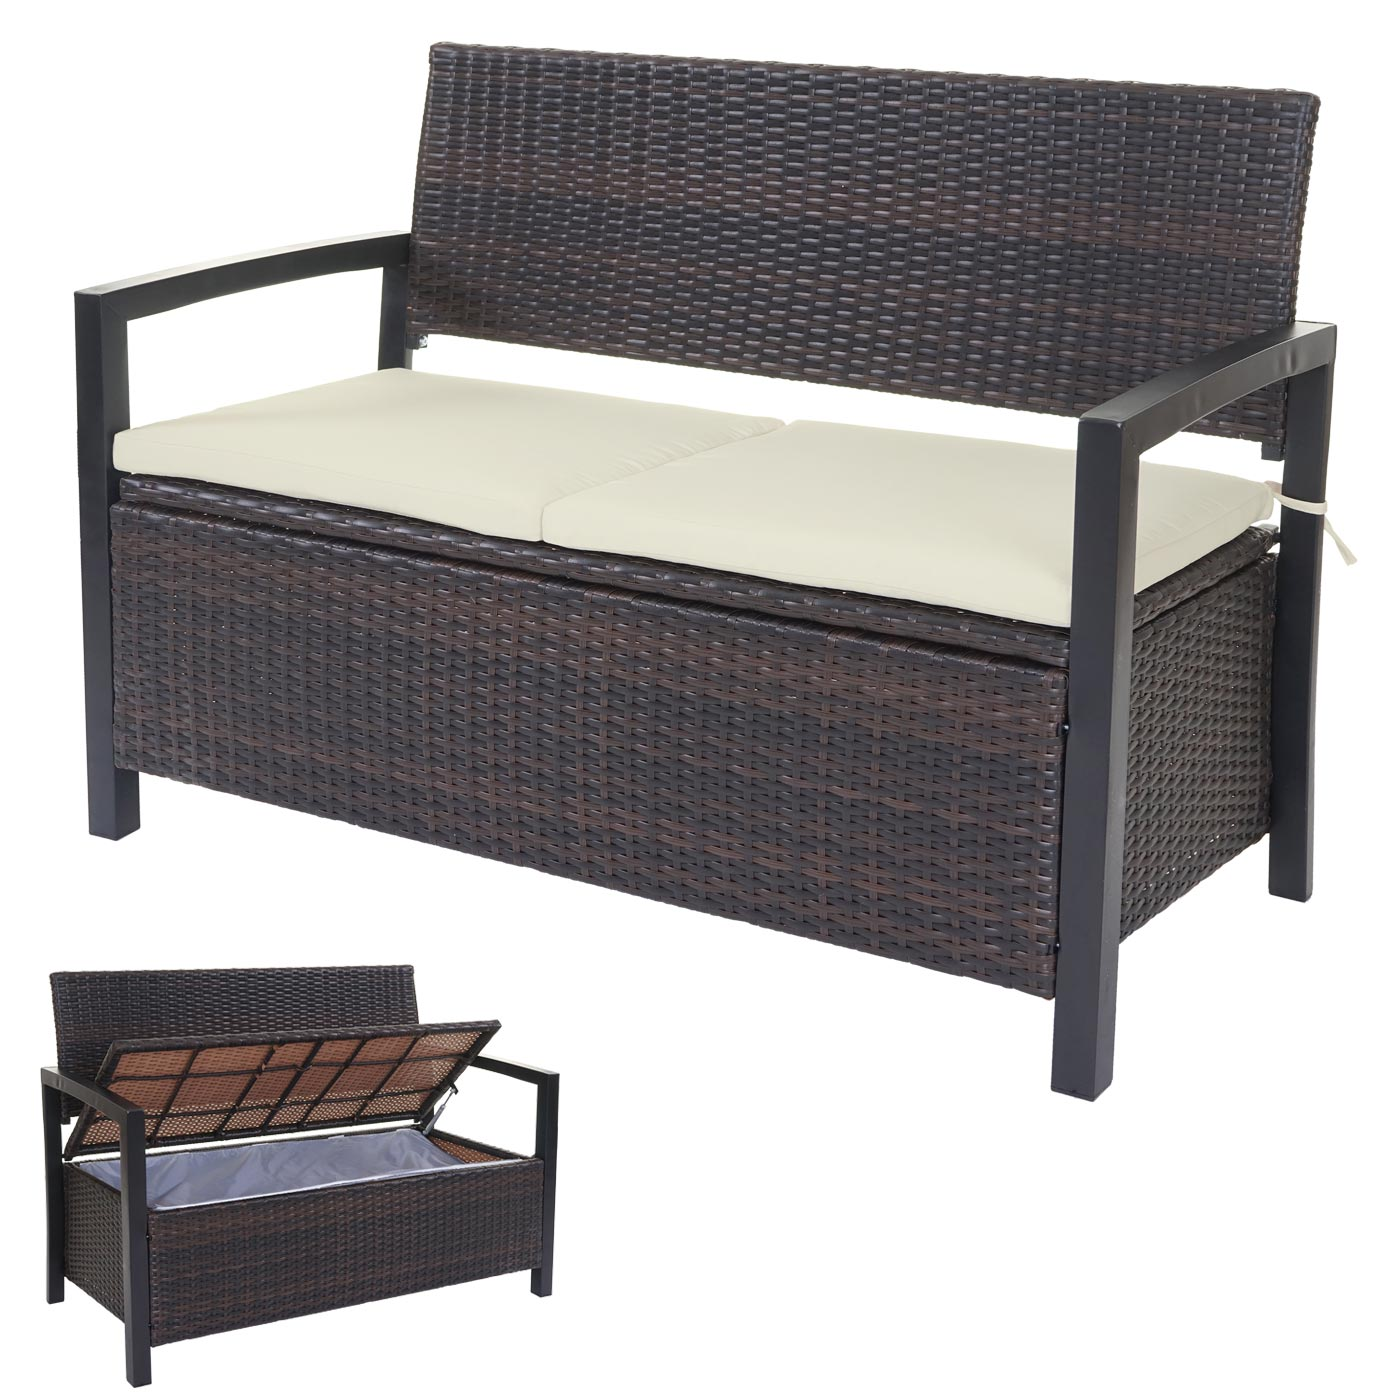 poly rattan gartenbank hwc a12 truhenbank bank staufach sitzkissen ebay. Black Bedroom Furniture Sets. Home Design Ideas